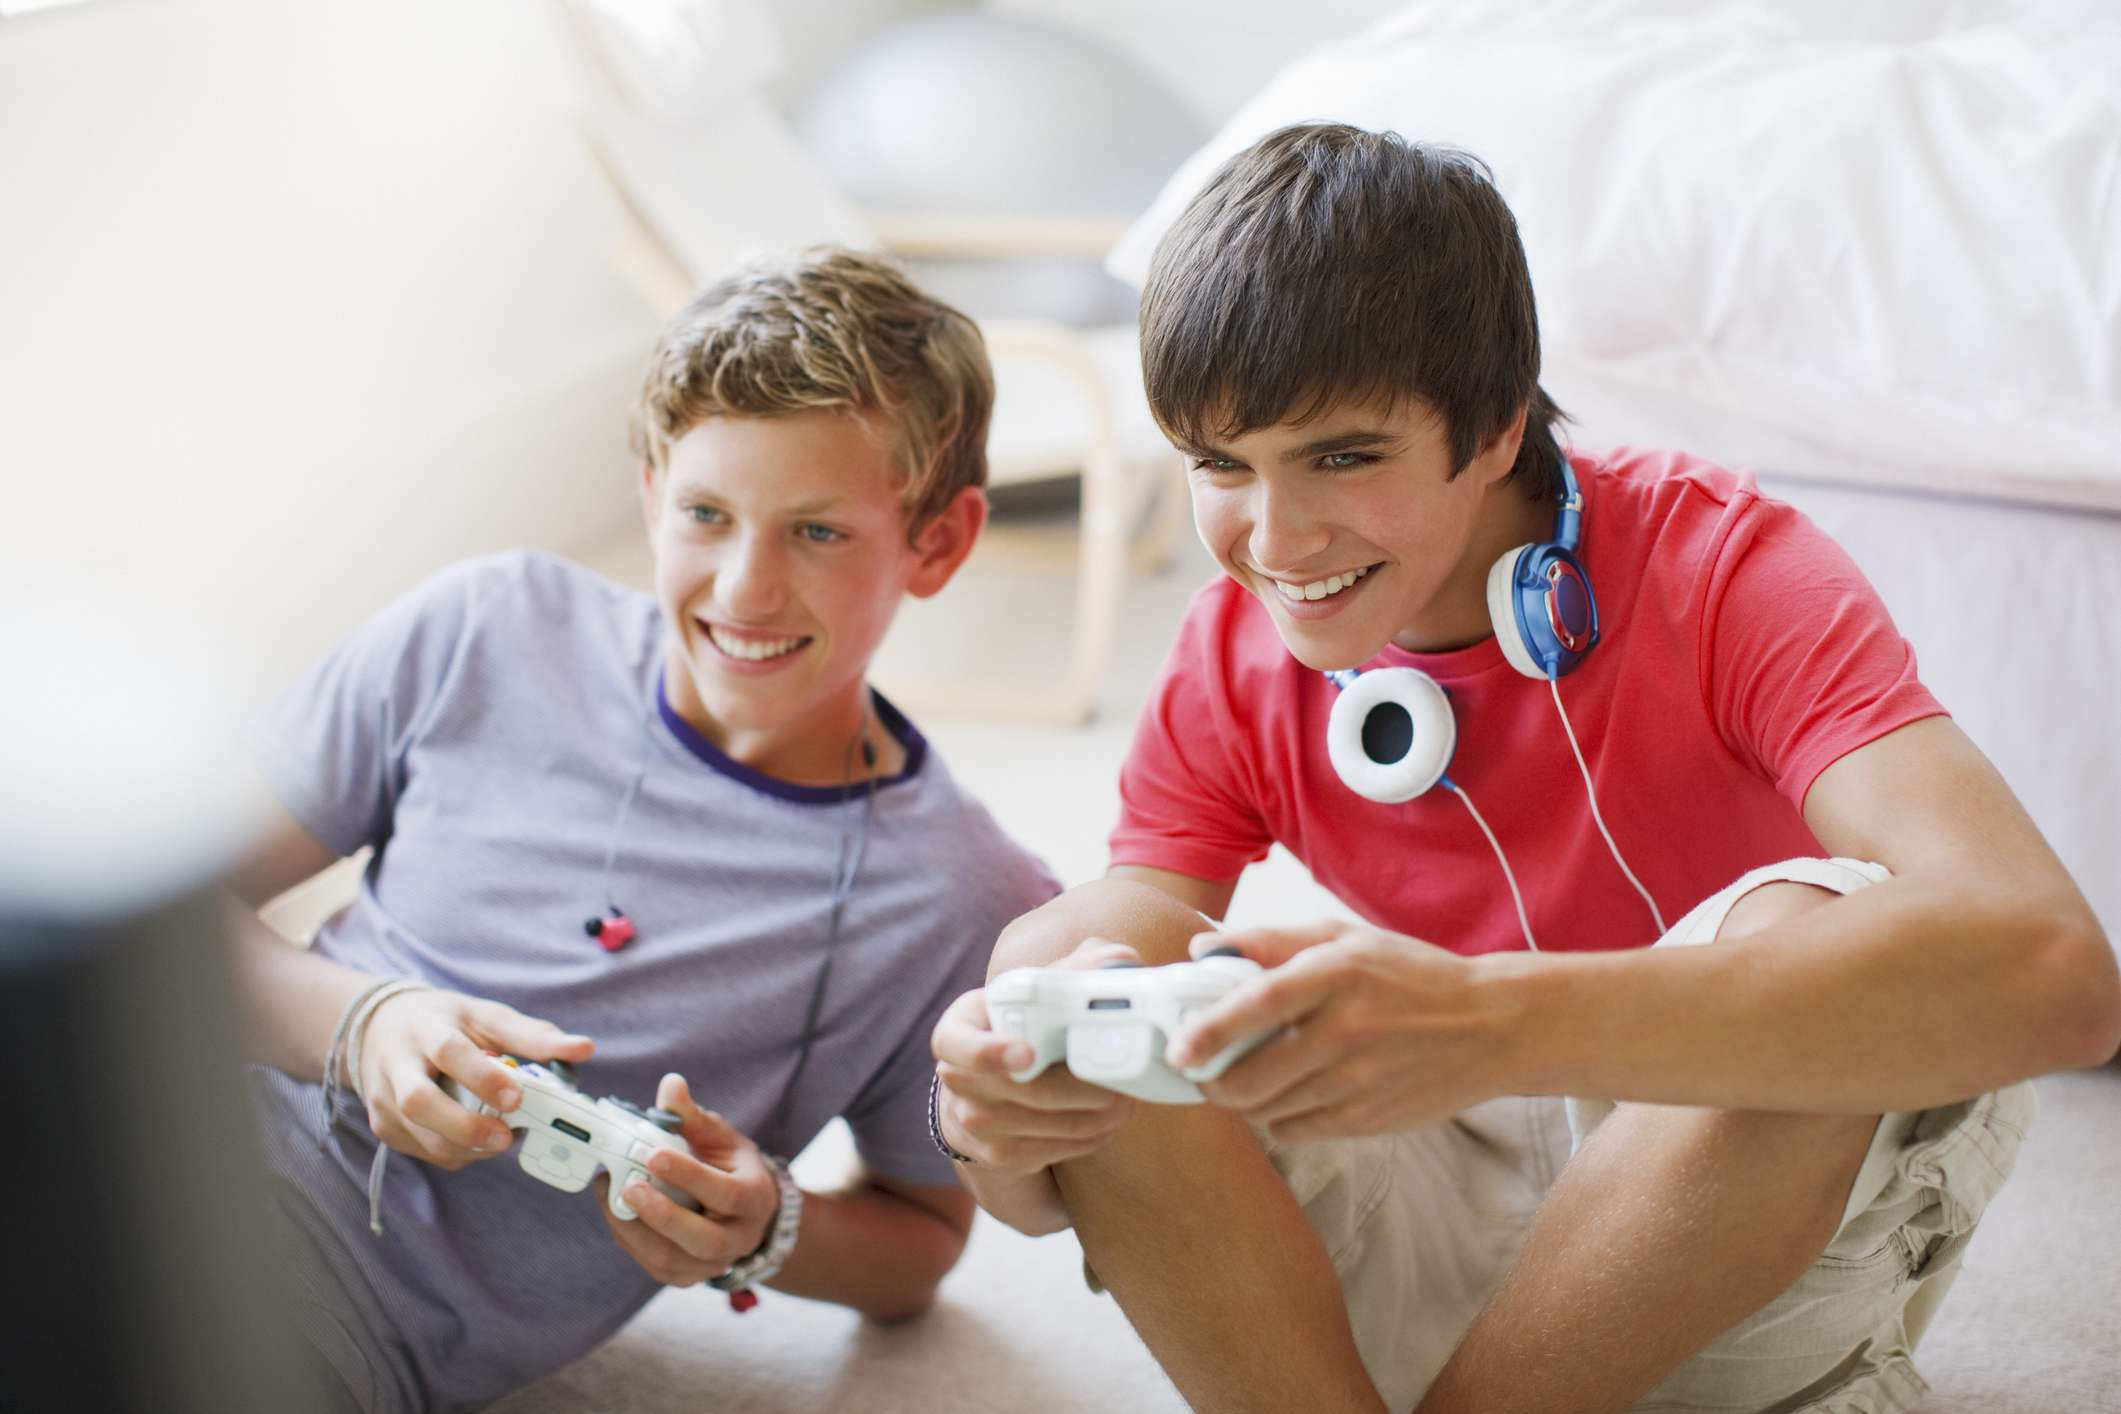 Two teenagers playing video games.